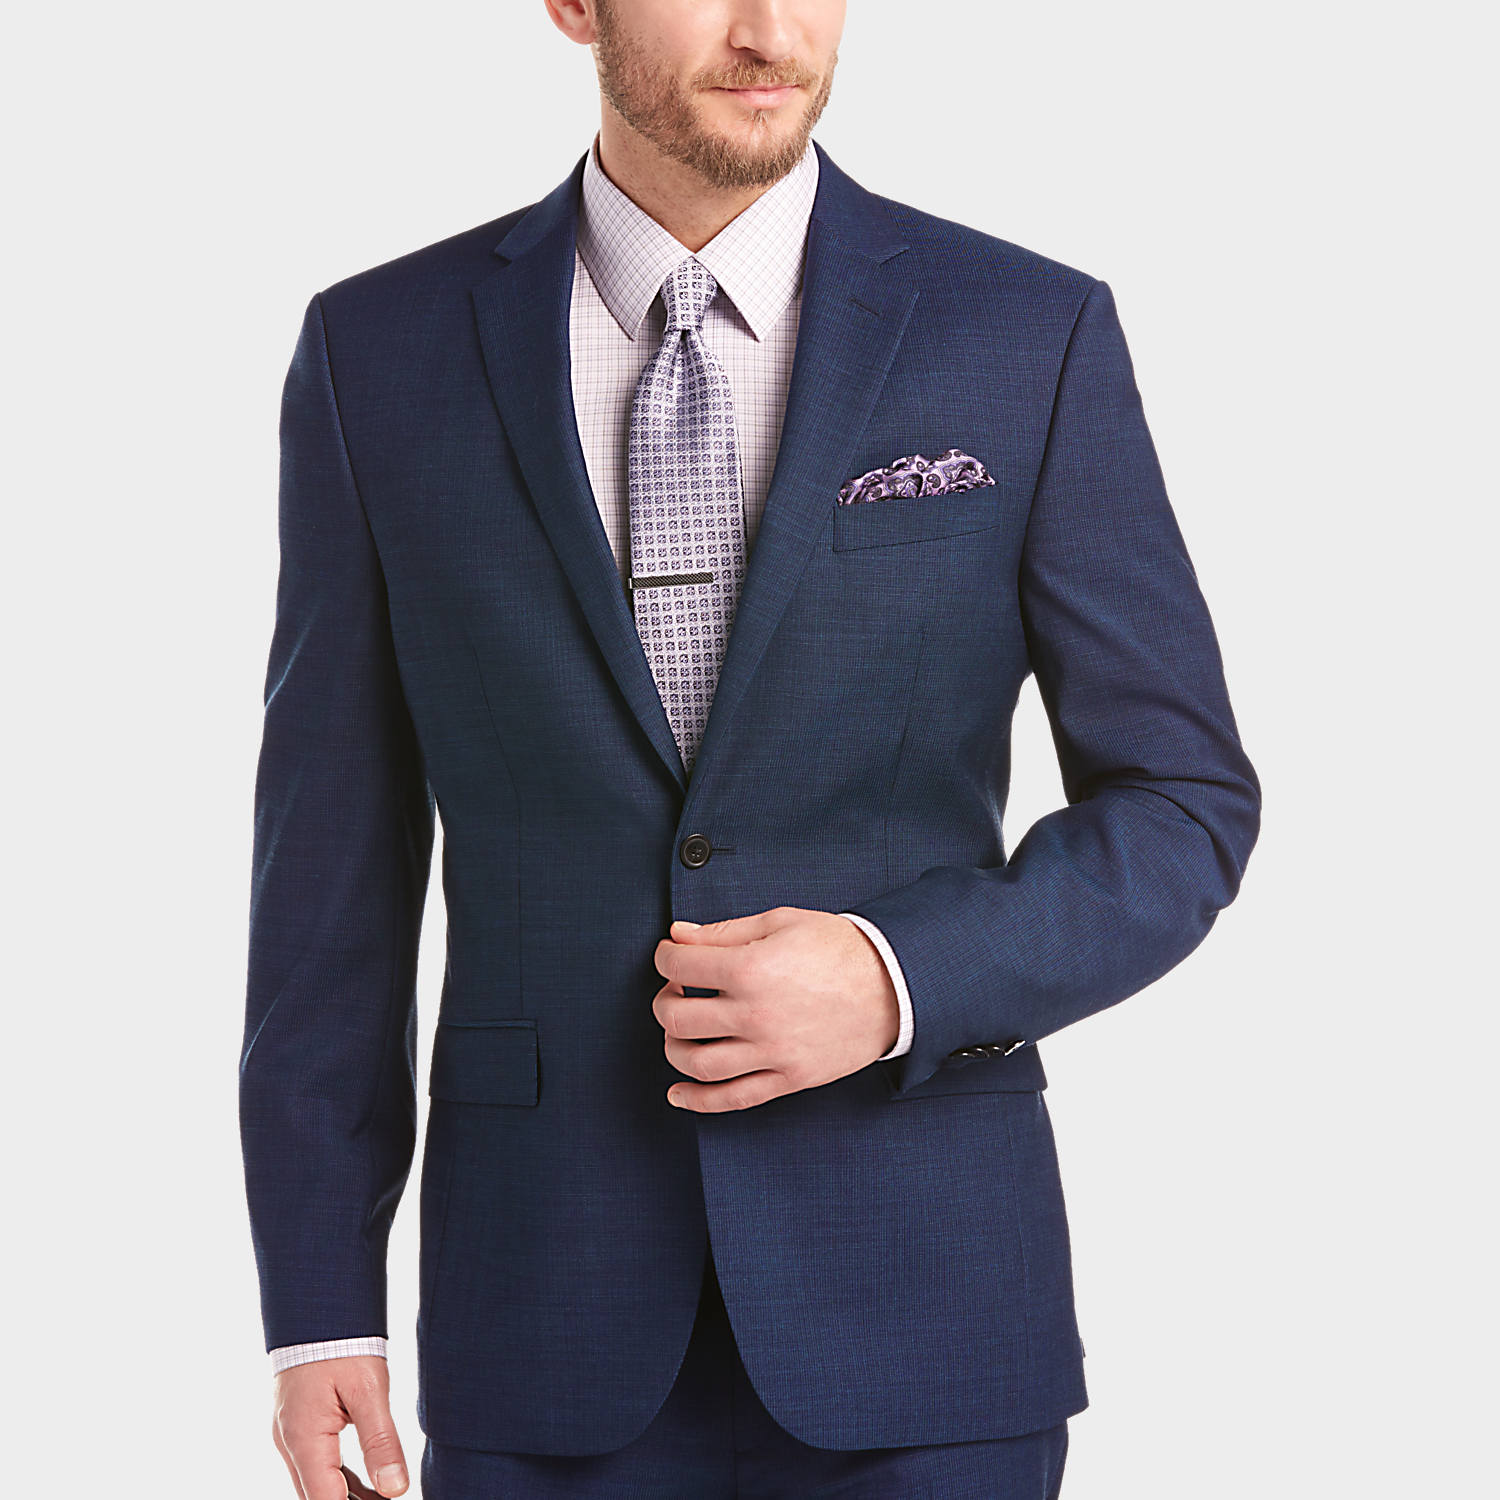 Stylish men's suits to stay at the top of your game at ZARA online. Receive your order with FREE SHIPPING.